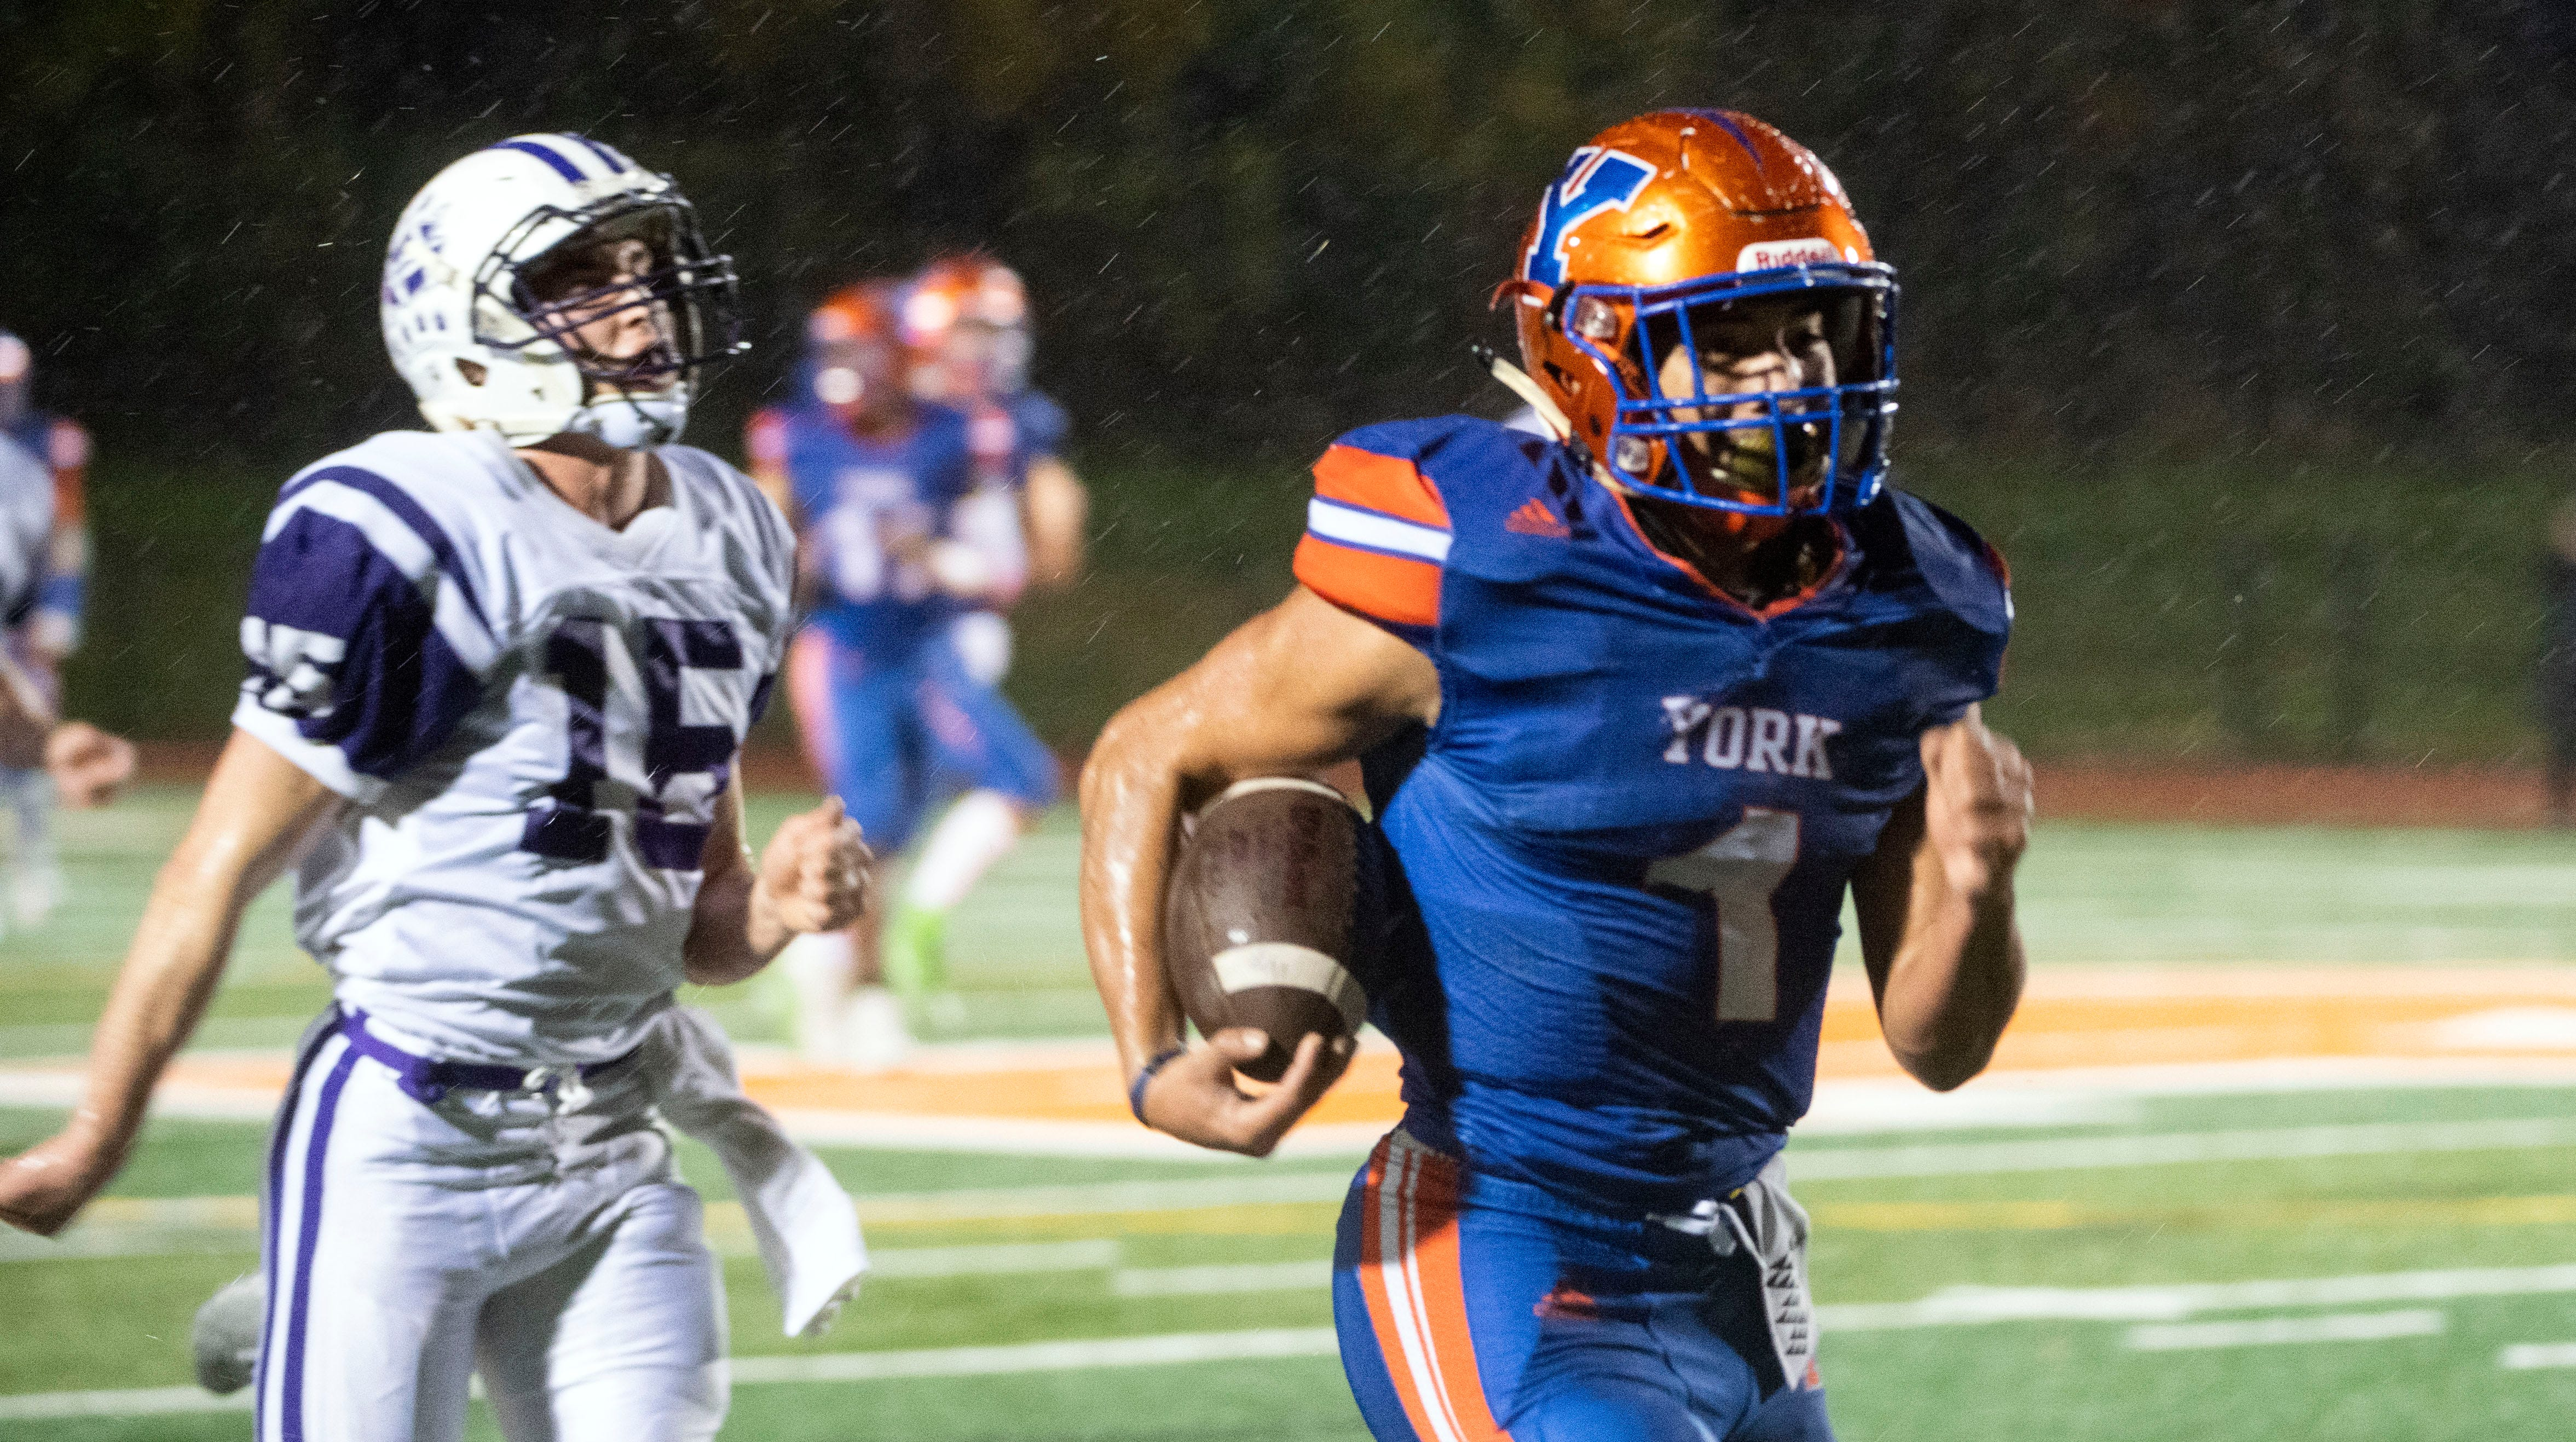 York High's Dayjure Stewart (1) runs the ball in for a touchdown during District 3 Class 5A playoff game at Small Field, Friday, Nov. 2, 2018. The York High Bearcats beat the Northern York Polar Bears, 42-7.